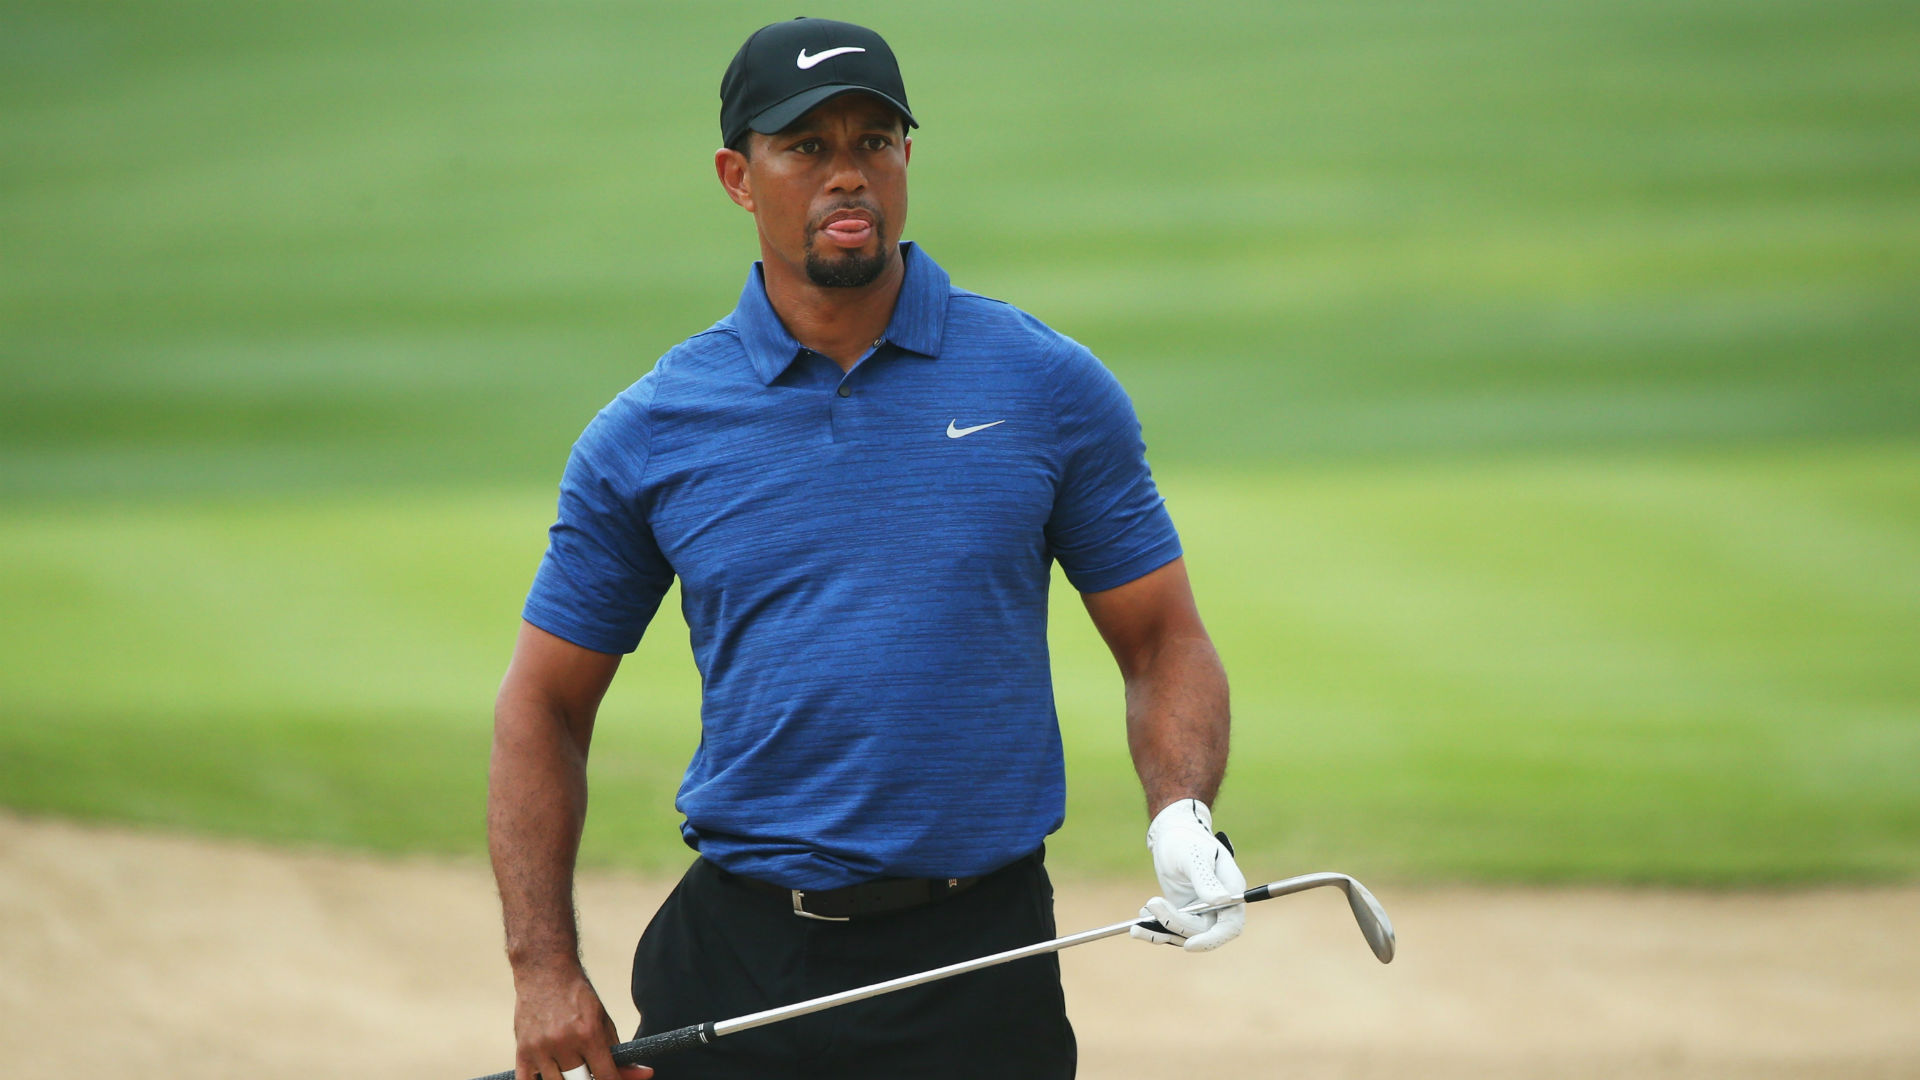 How old is Tiger Woods?